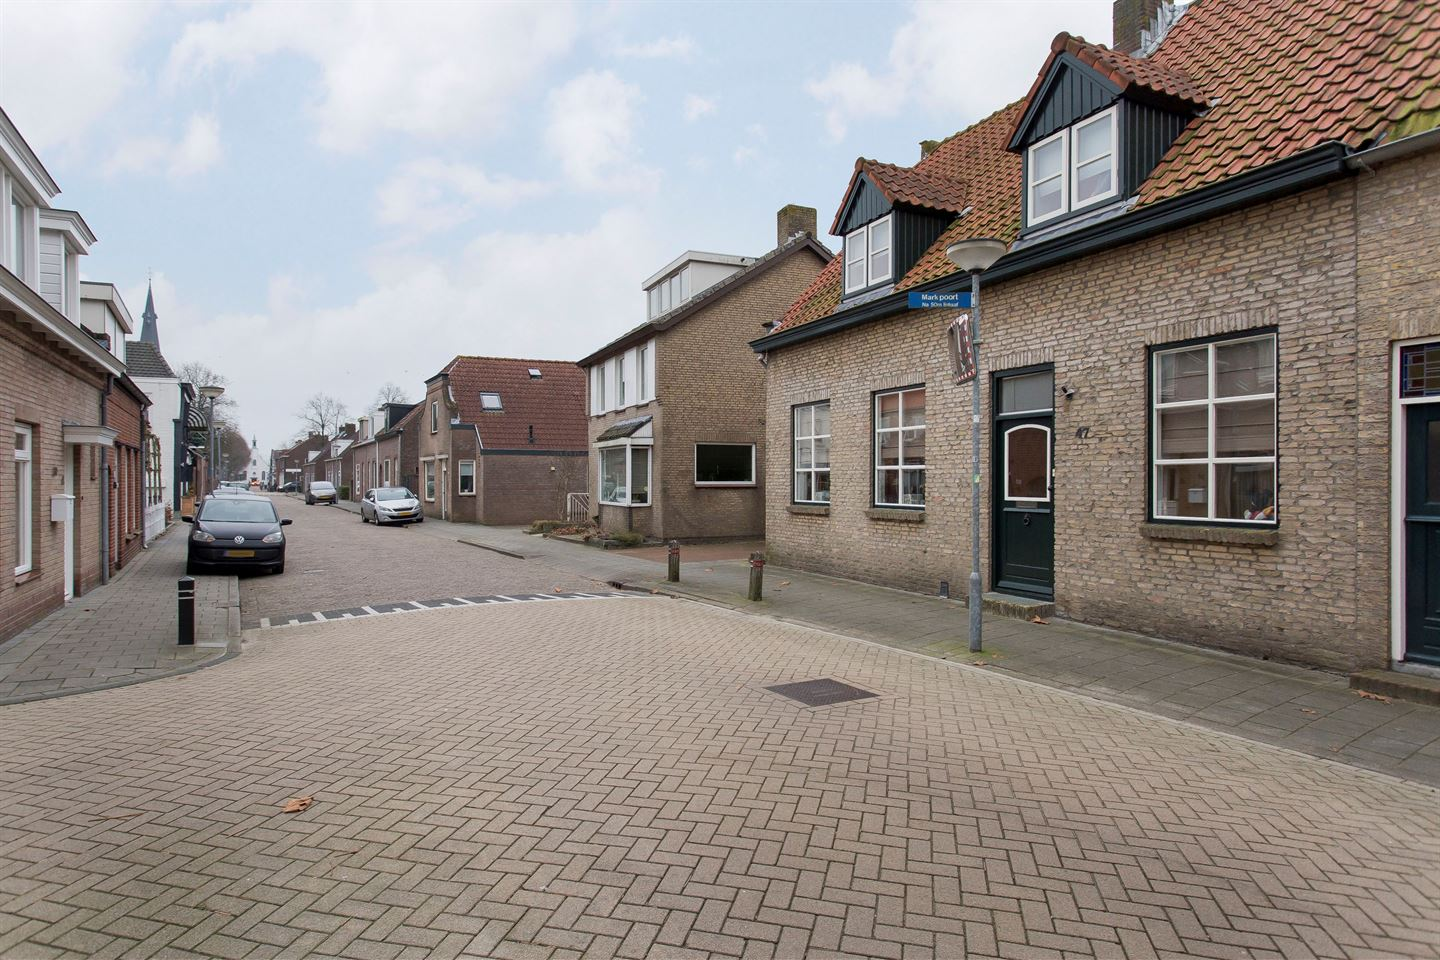 View photo 3 of Markstraat 47